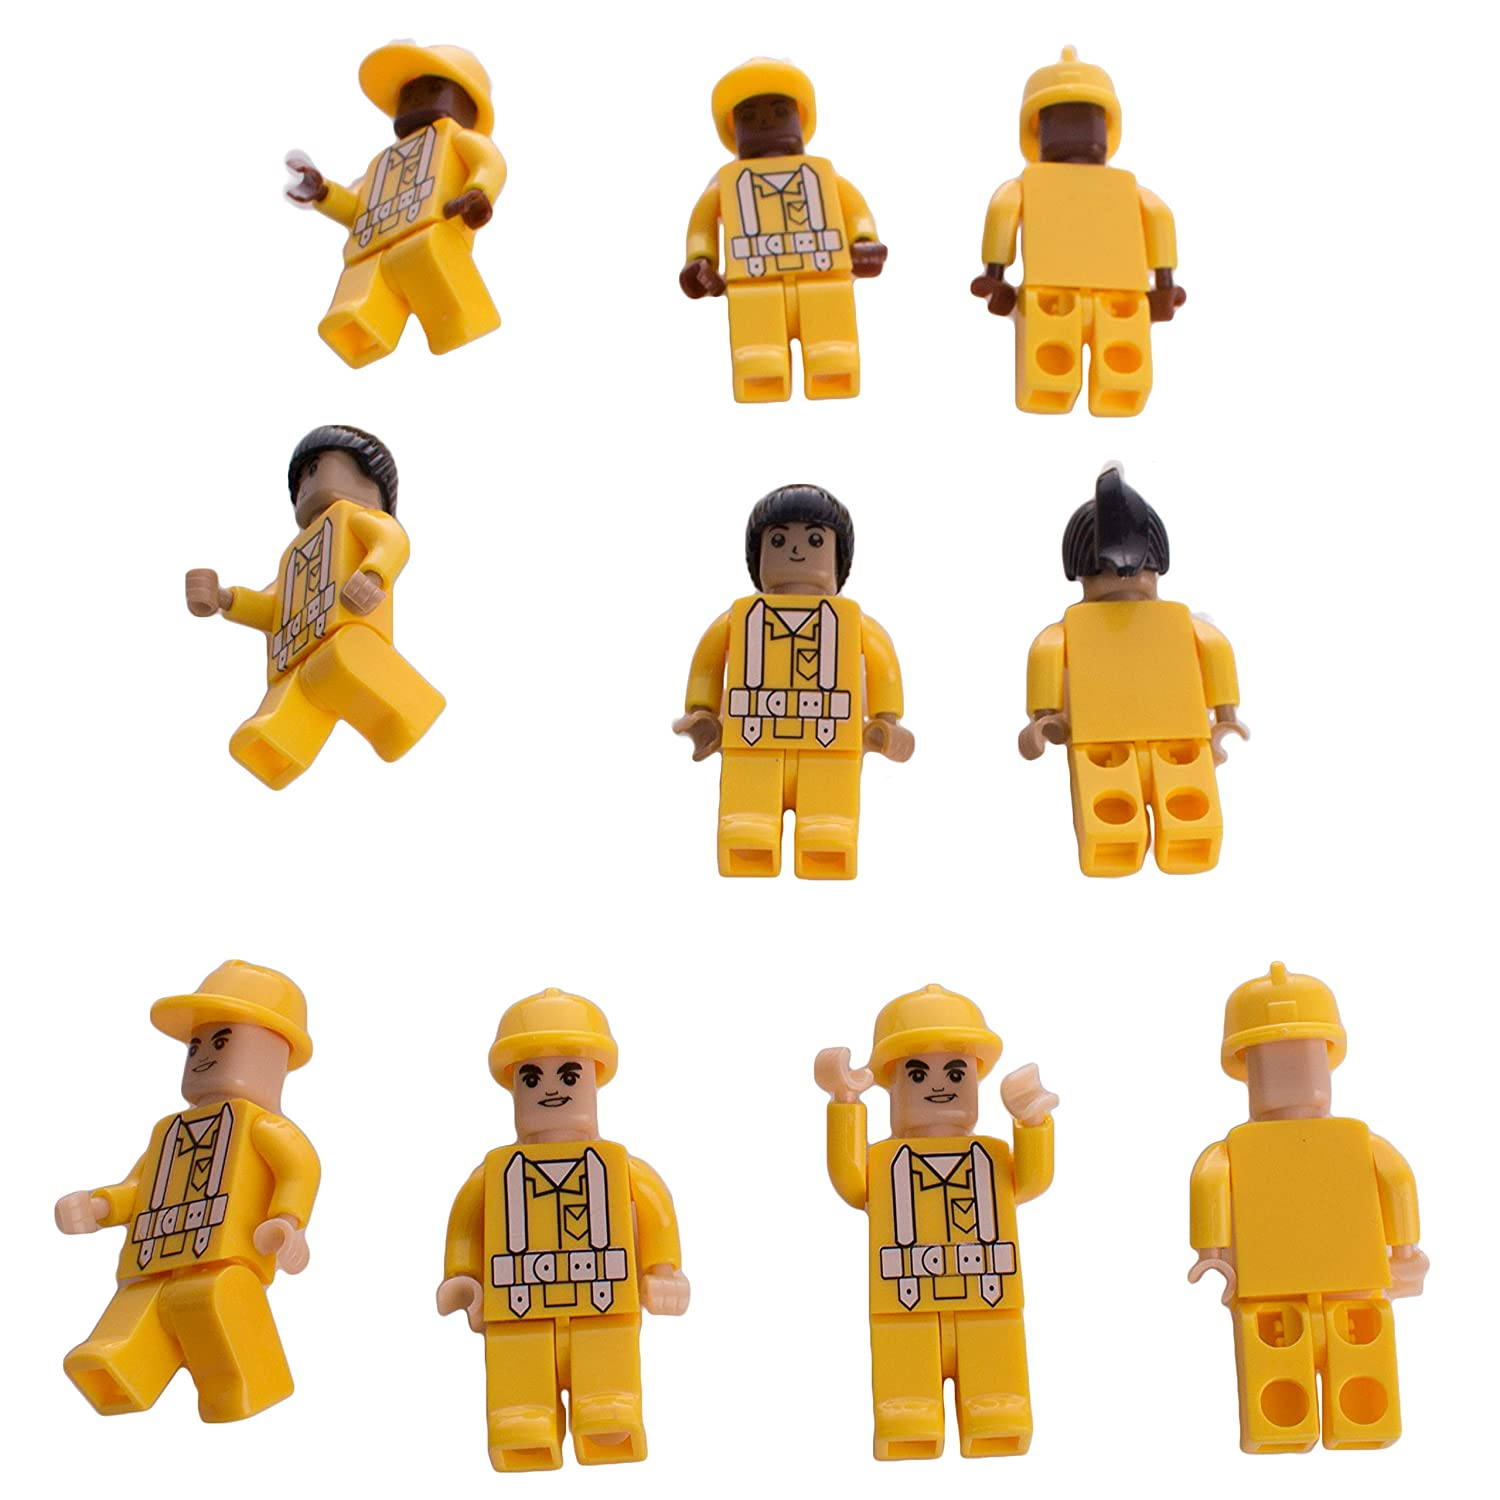 Assorted Construction Worker Interlocking Connecting Bricks Blocks Action Figures (10)